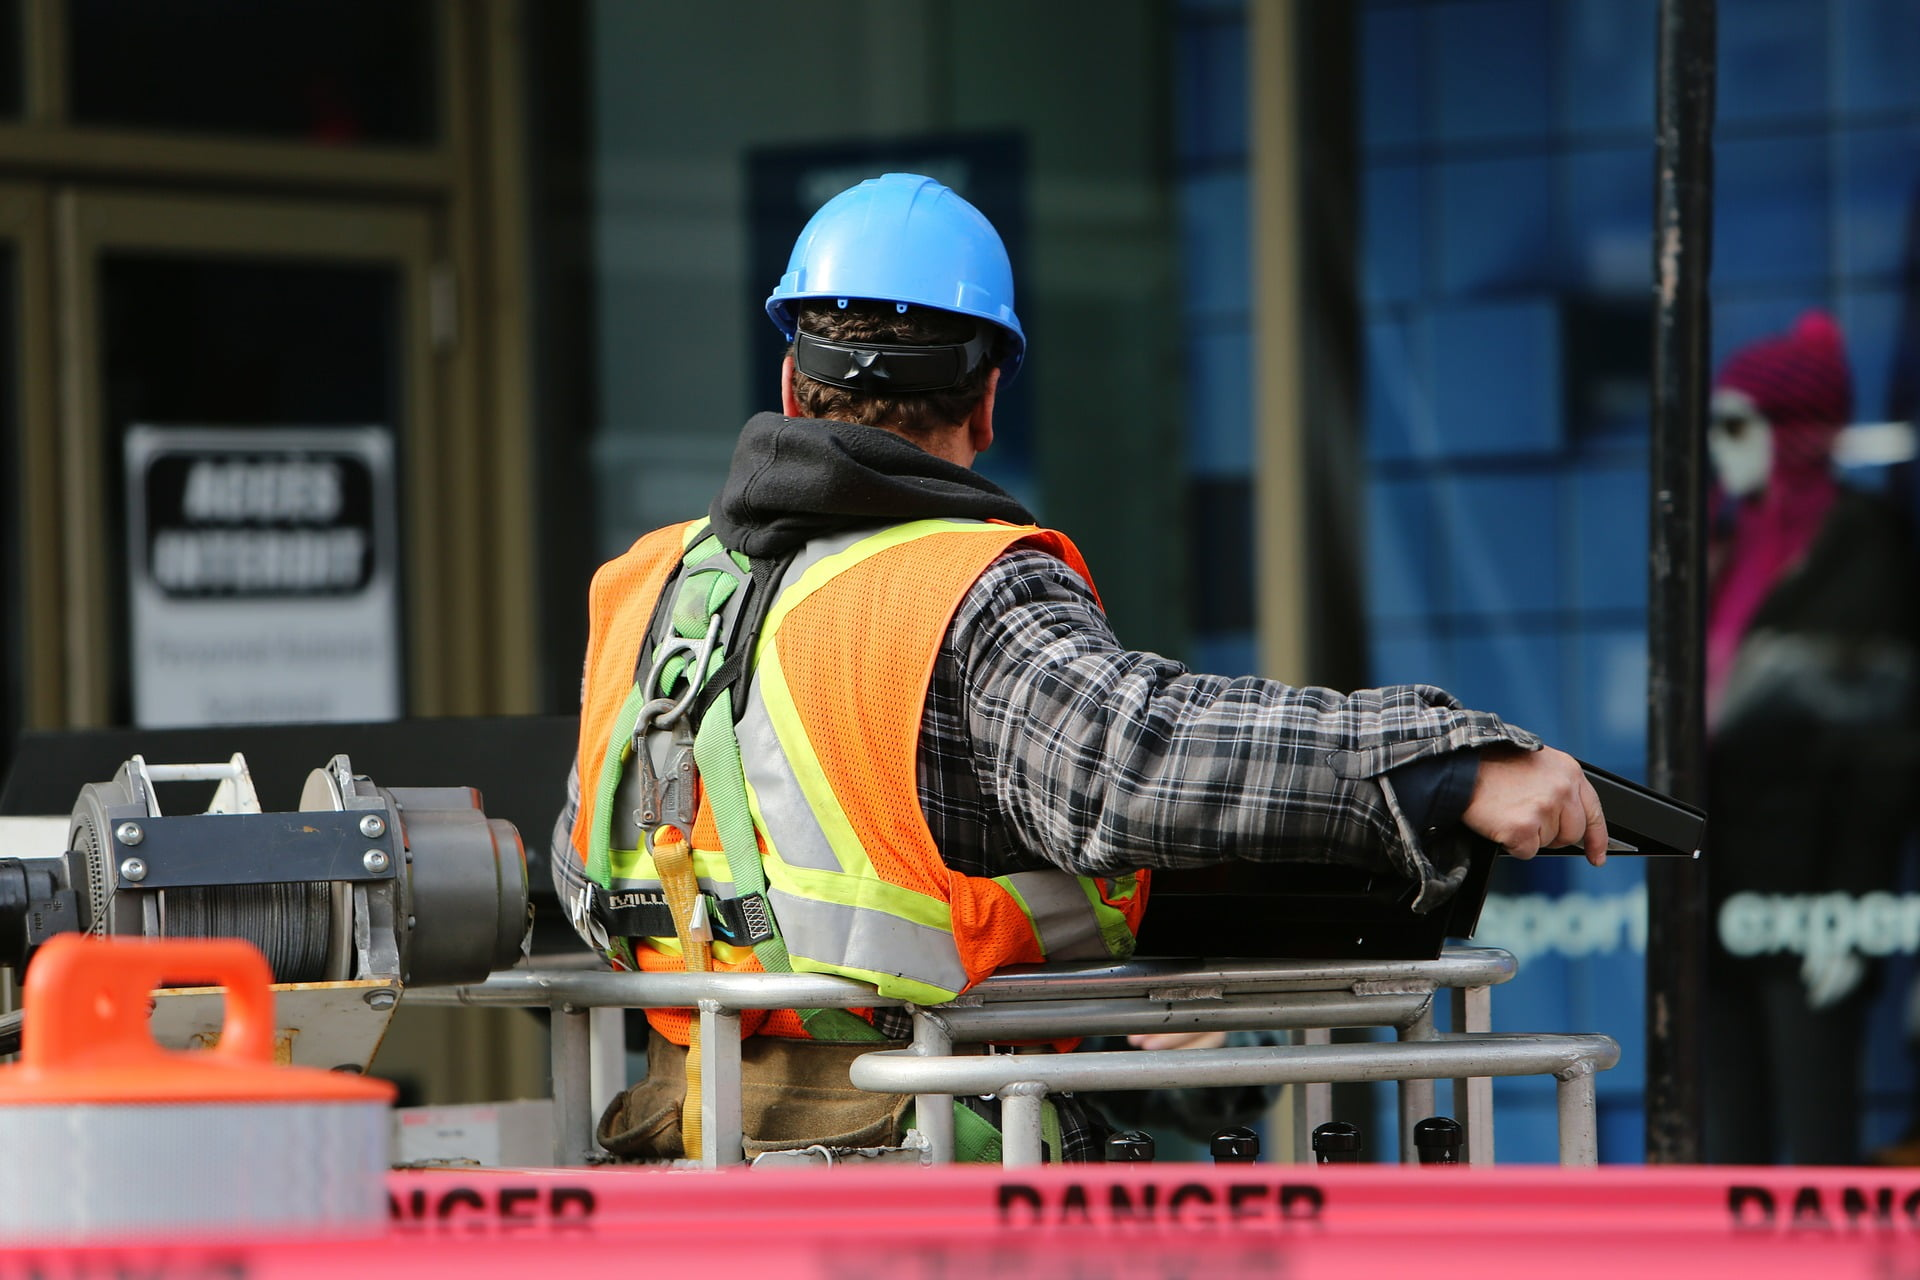 Choosing a qualified fire protection contractor